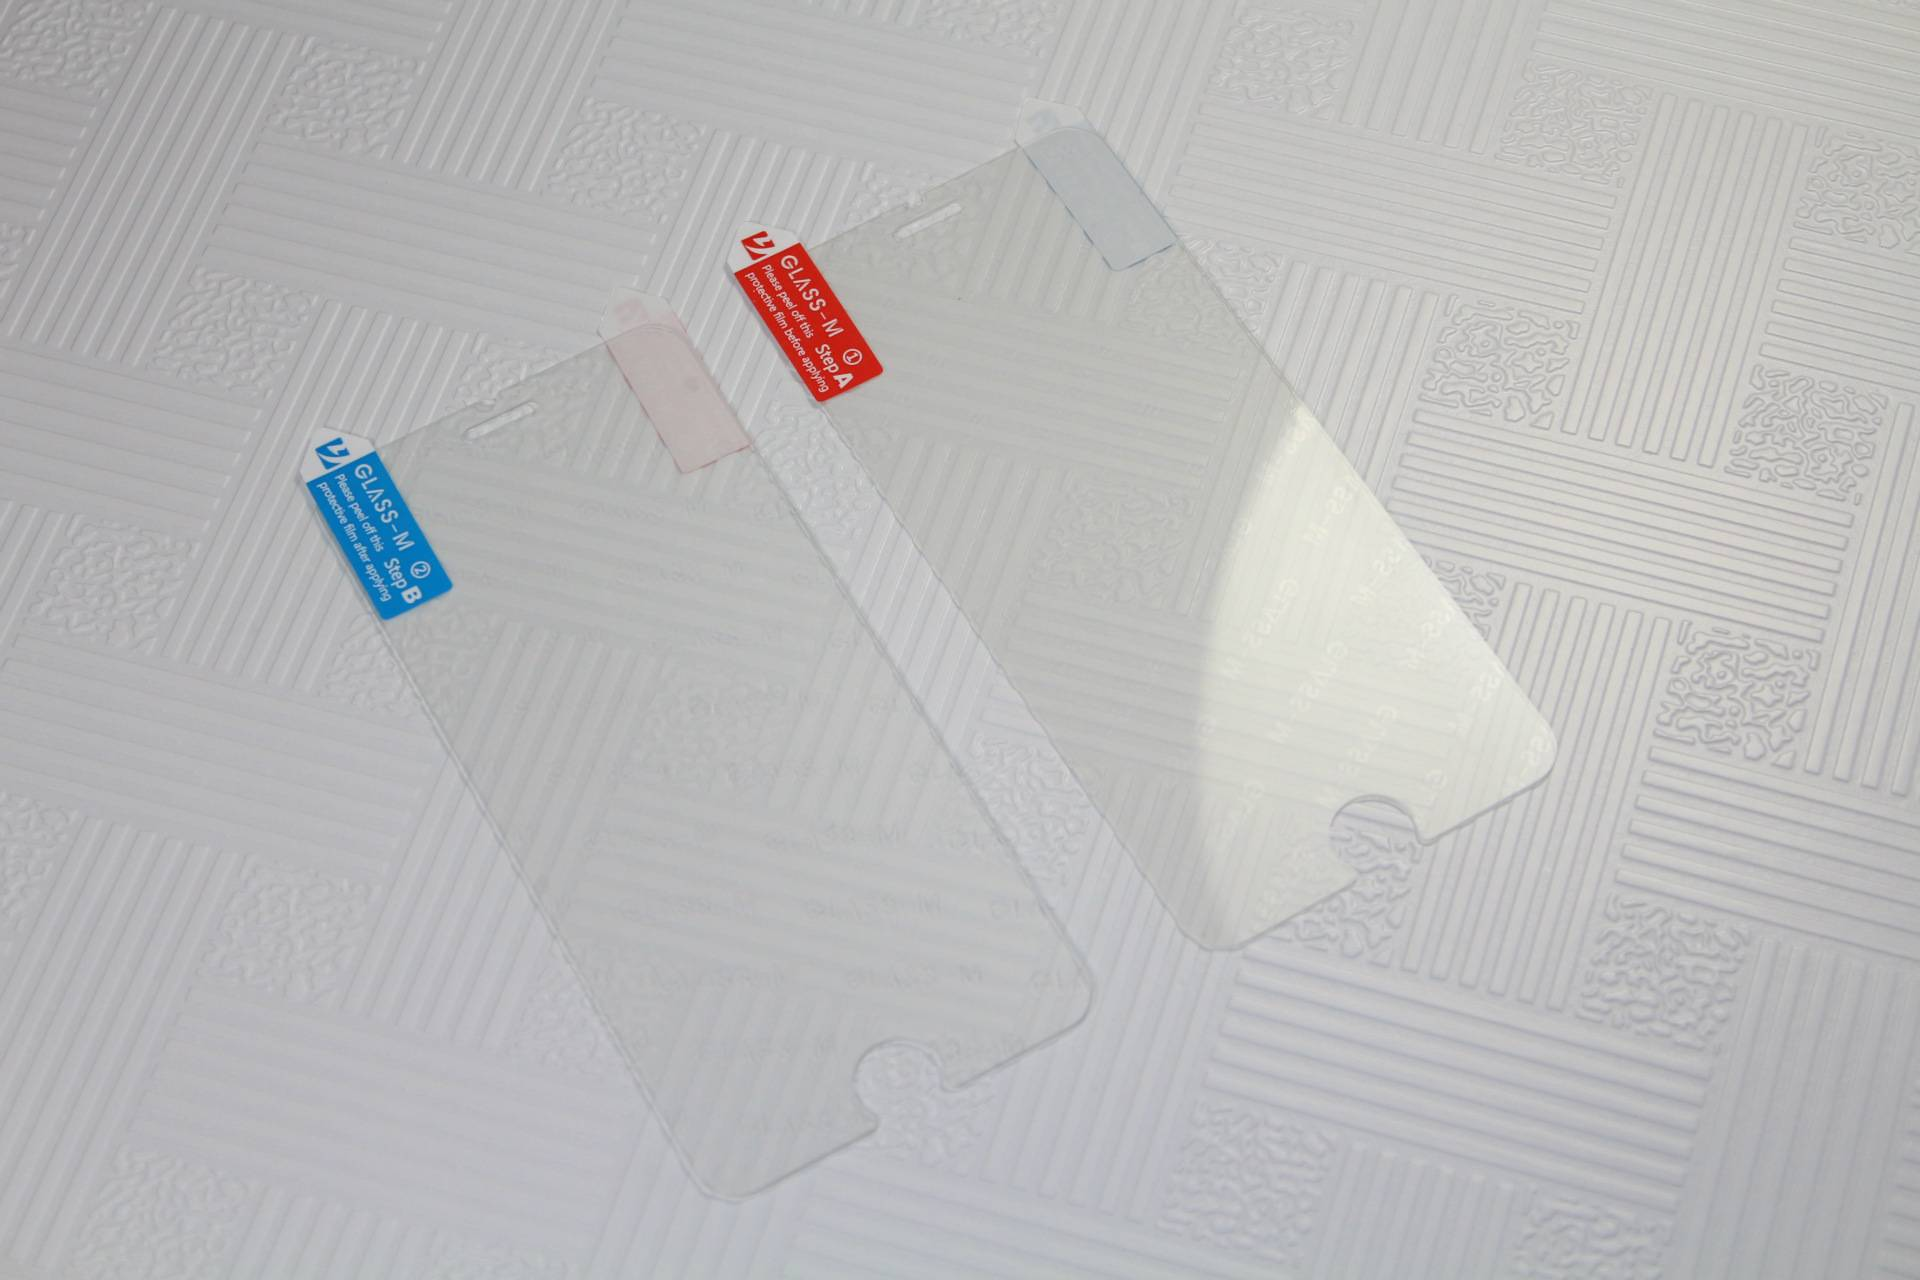 phone screen protection film